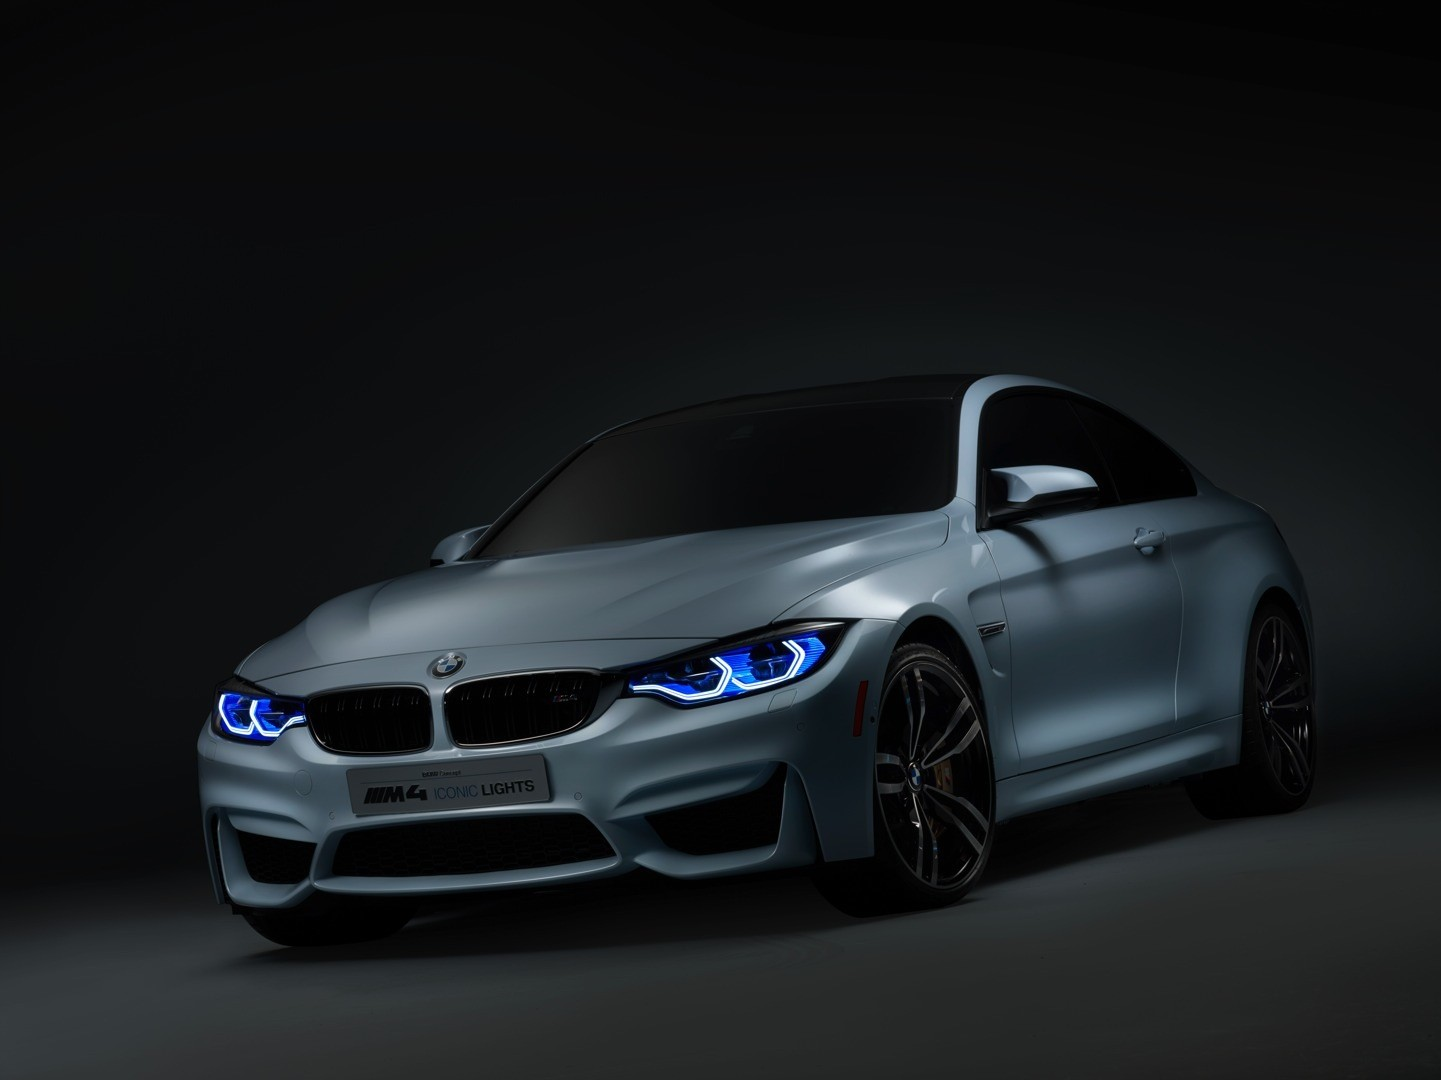 bmw-m4-concept-iconic-lights-brings-intelligent-laser-beams-and-oleds-at-ces-photo-gallery_15